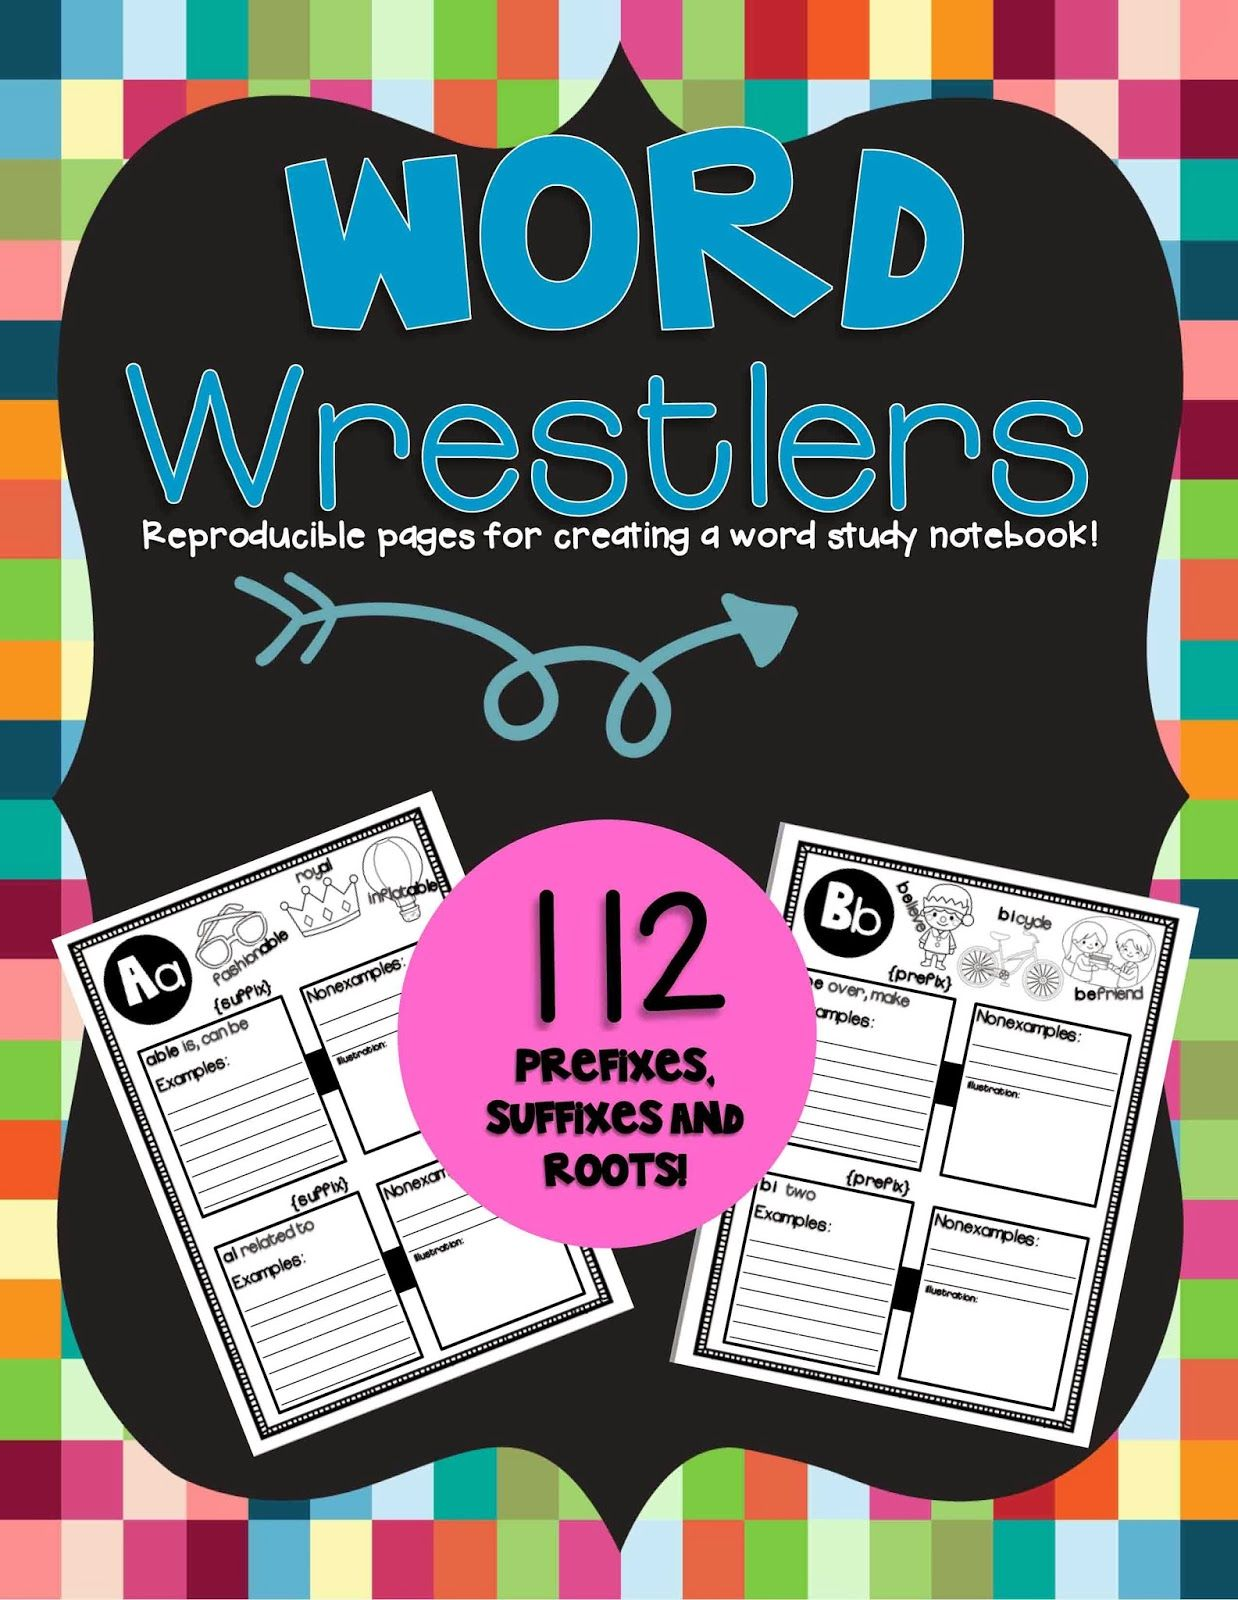 The Teaching Reef: Word Wrestlers! My newest unit, creating a word study notebook!